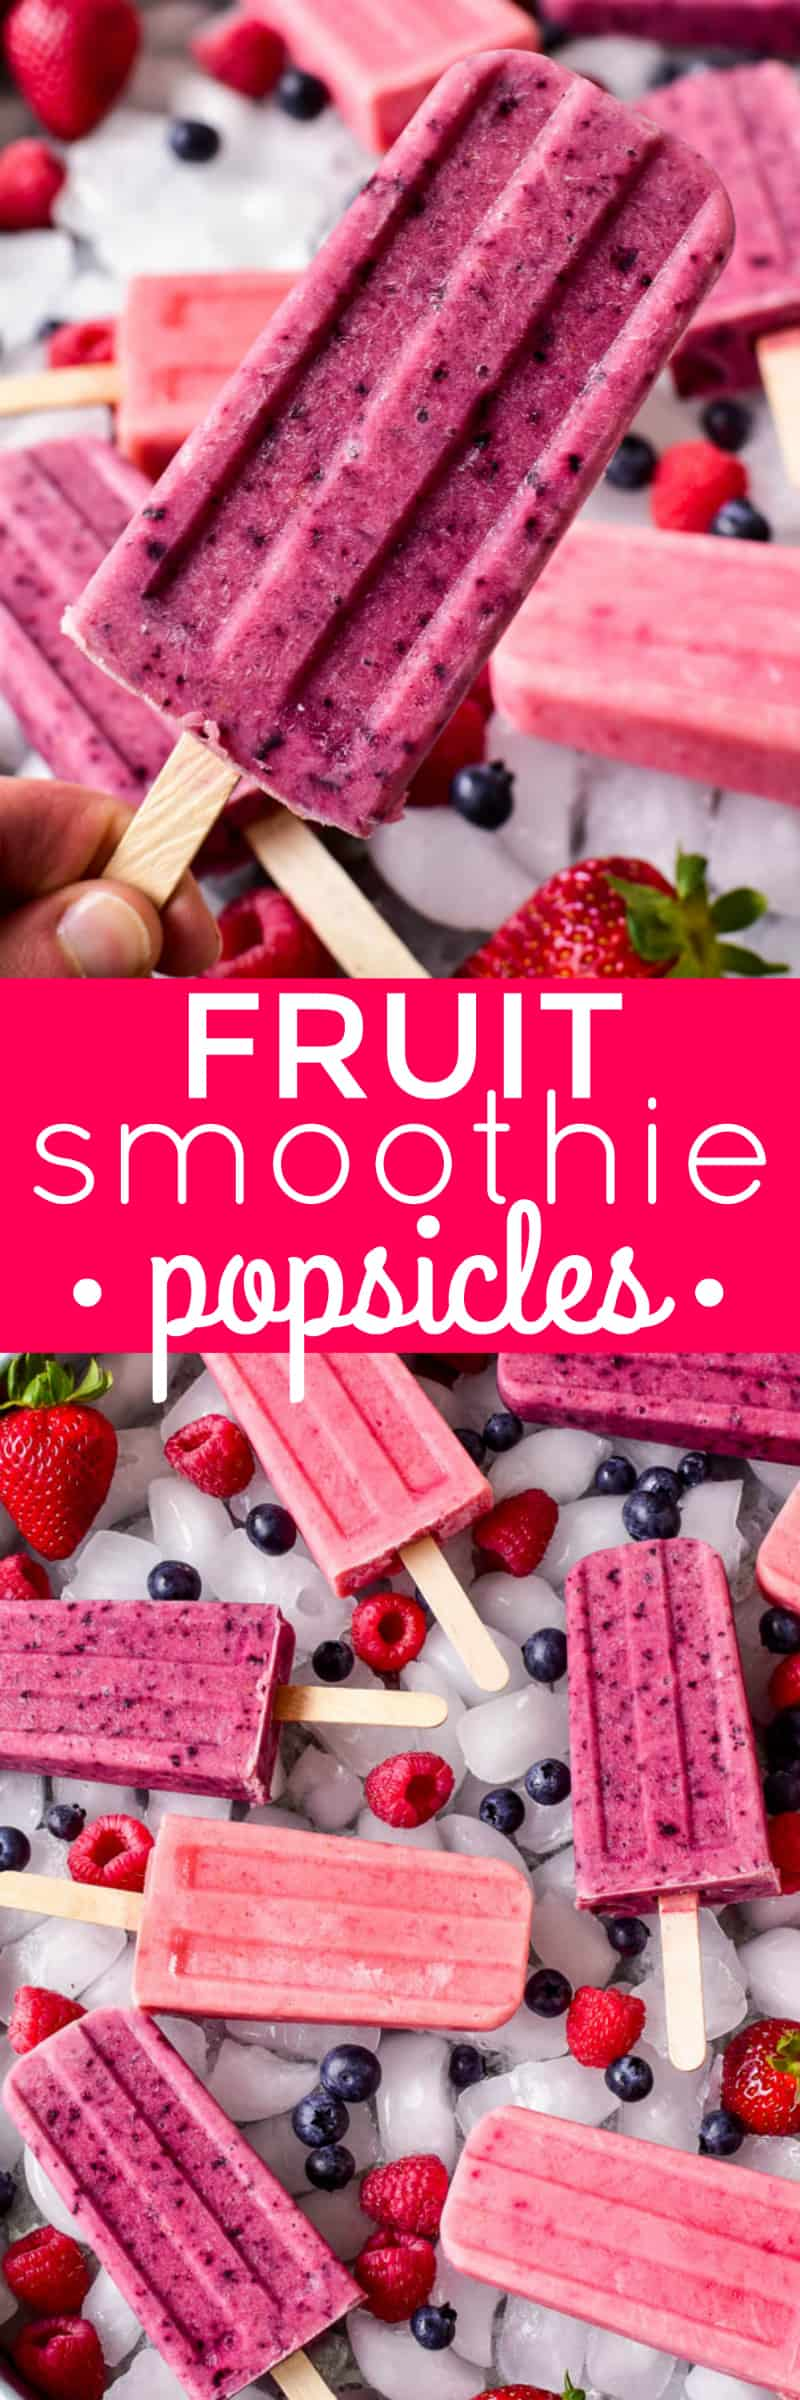 Fruit Smoothie Popsicles are one of our favorite summer treats! They combine all the flavors of a fruit smoothie with all the fun a popsicle. Made with just three simple ingredients, these fruit smoothie popsicles come together in minutes and make a delicious breakfast, snack, or after dinner treat. They can be made with any combination of fruit, which means theres a flavor combination for everyone! Whether you're a smoothie lover or looking to eat healthier this summer, these Fruit Smoothie Popsicles are destined to become a new summer (or year round) favorite!